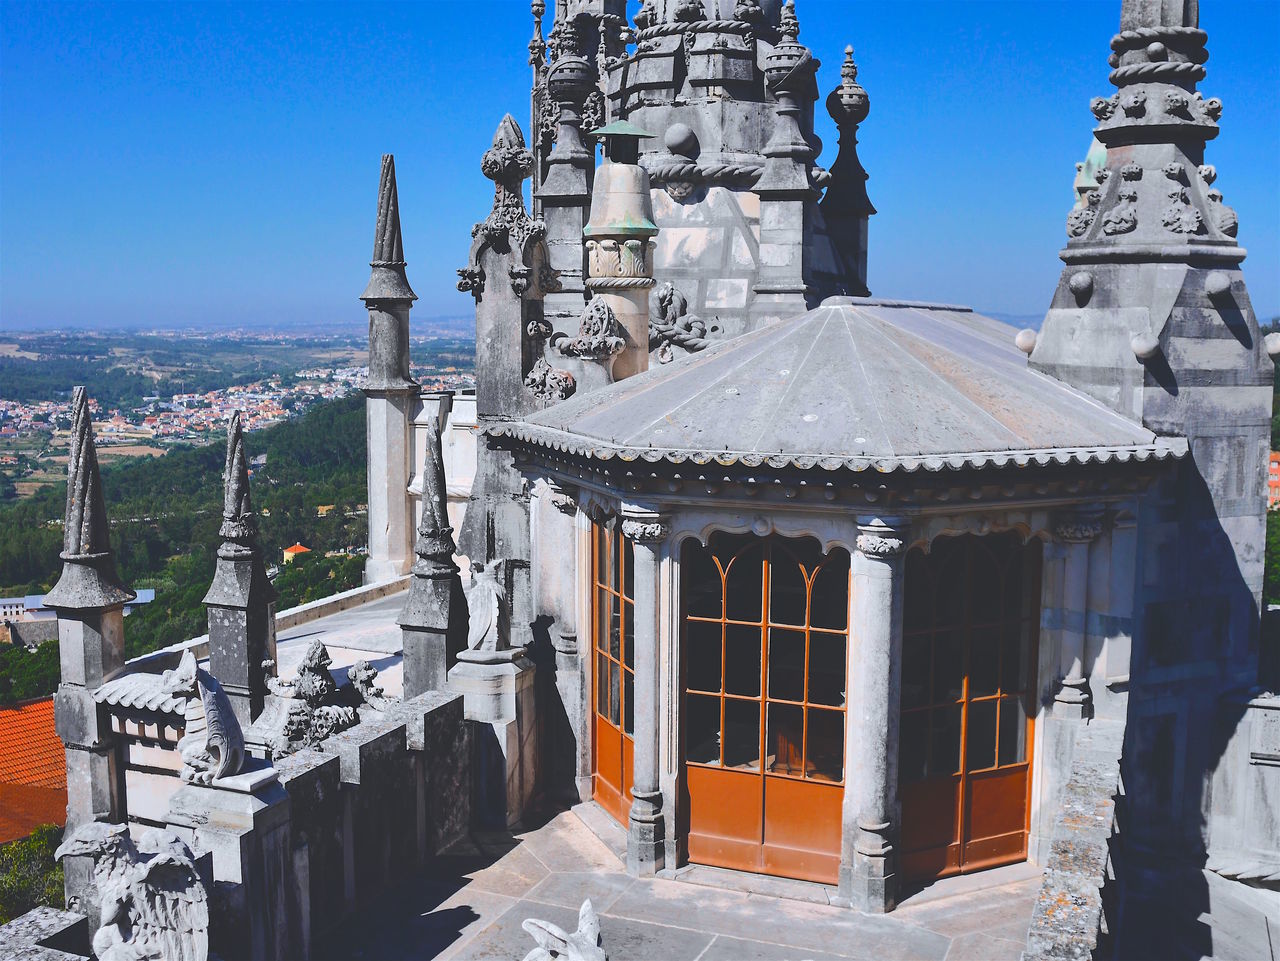 Architecture Building Exterior Built Structure City Break Clear Sky Dome Excursion History Sculpture Sintra Sintra (Portugal) Sky Travel Destinations